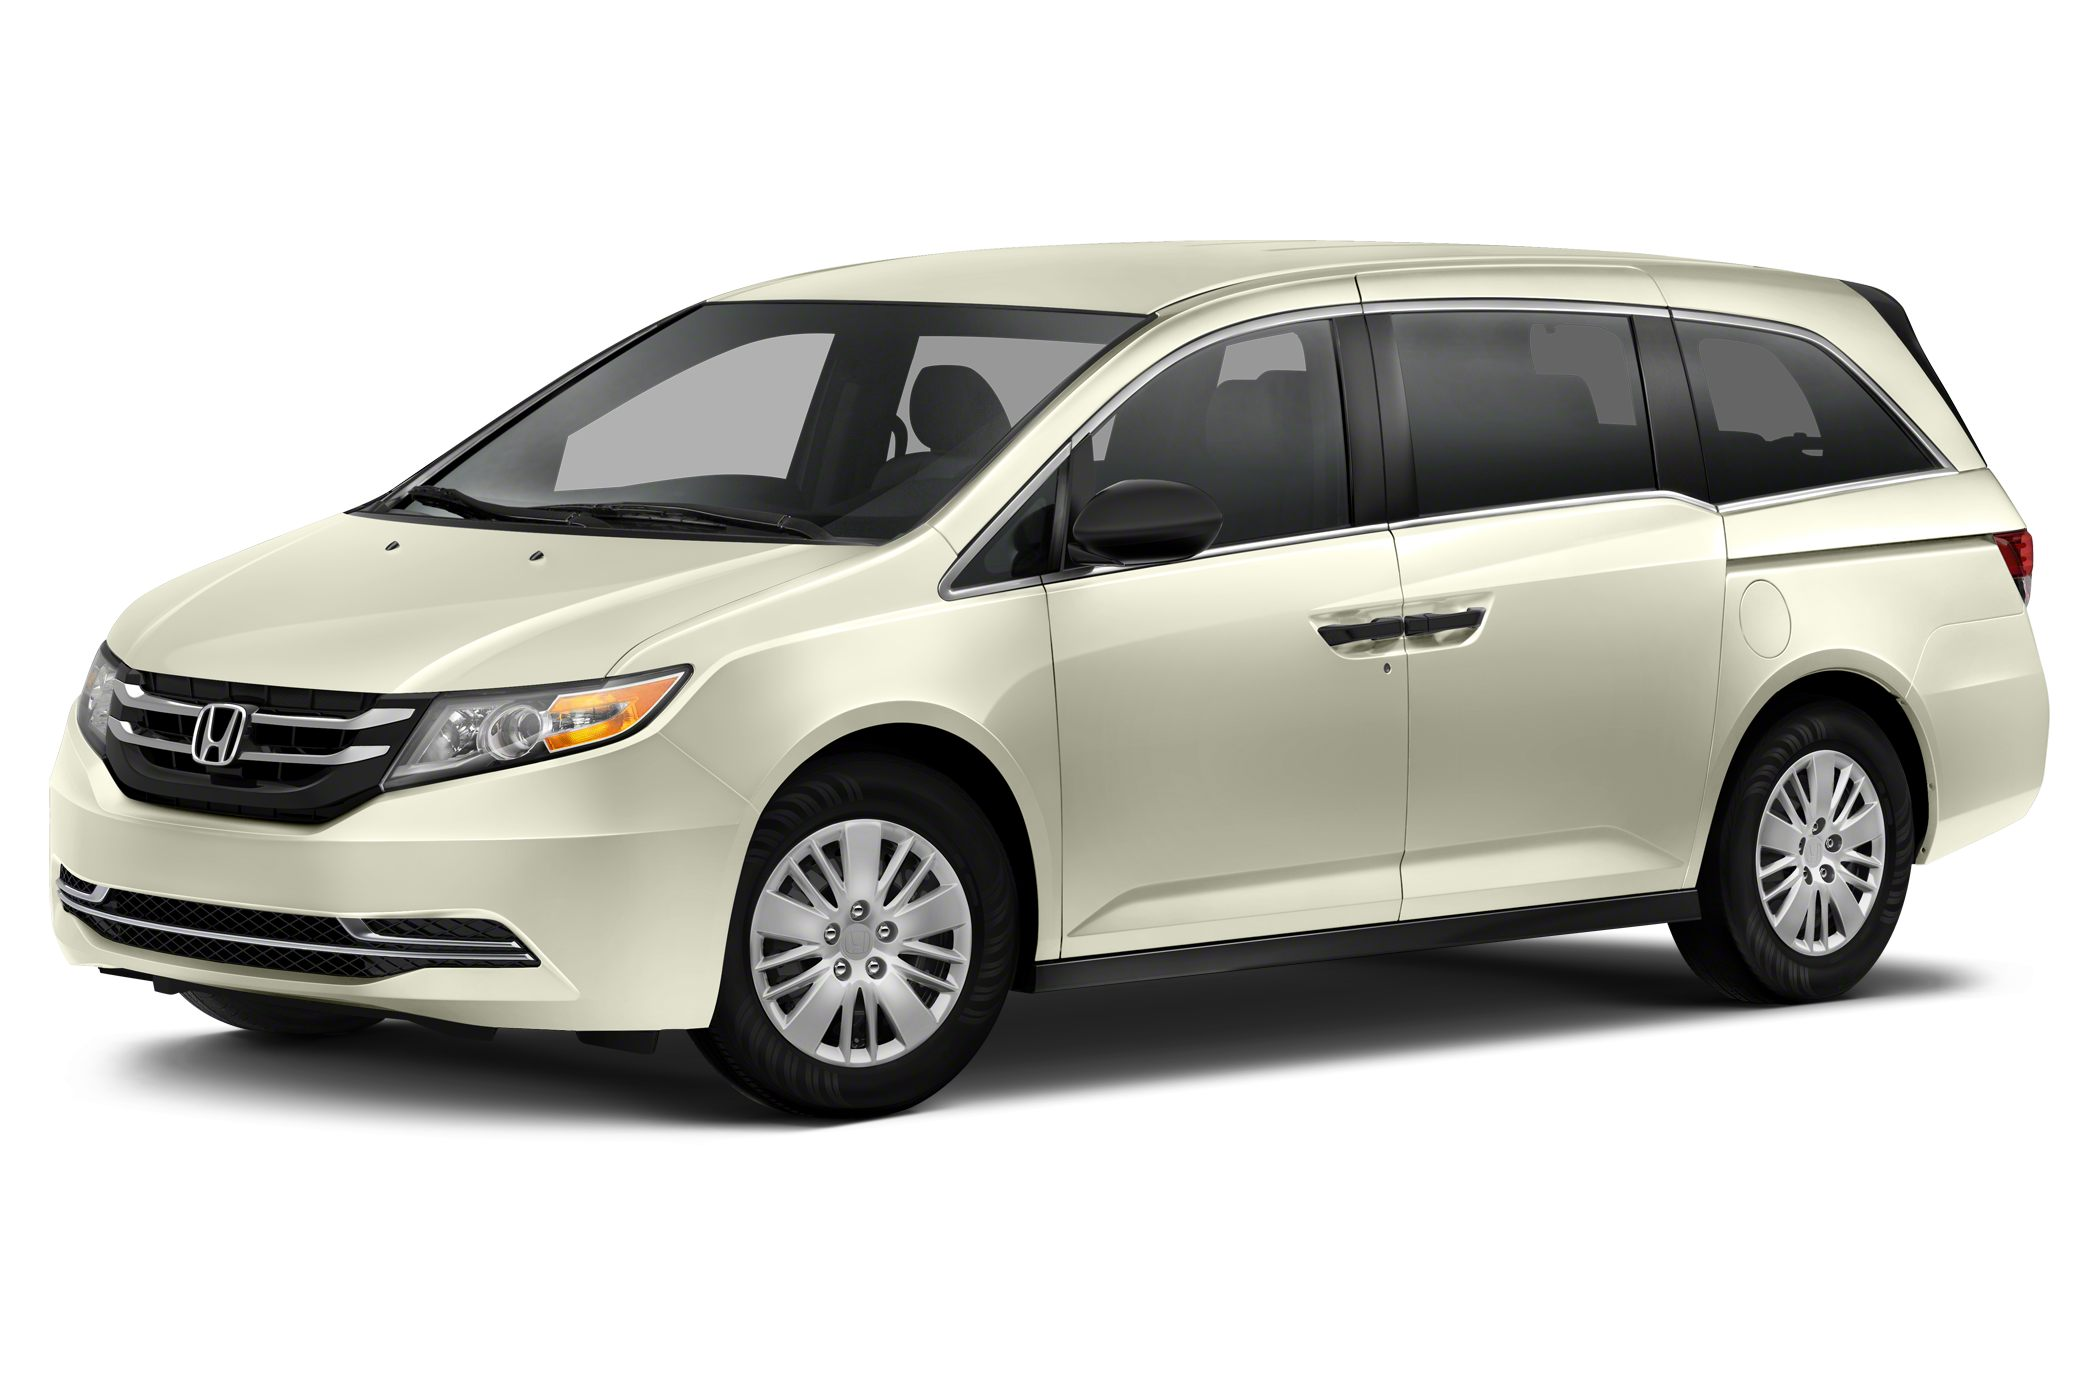 2017 Honda Odyssey J Price in UAE, Specification & Features